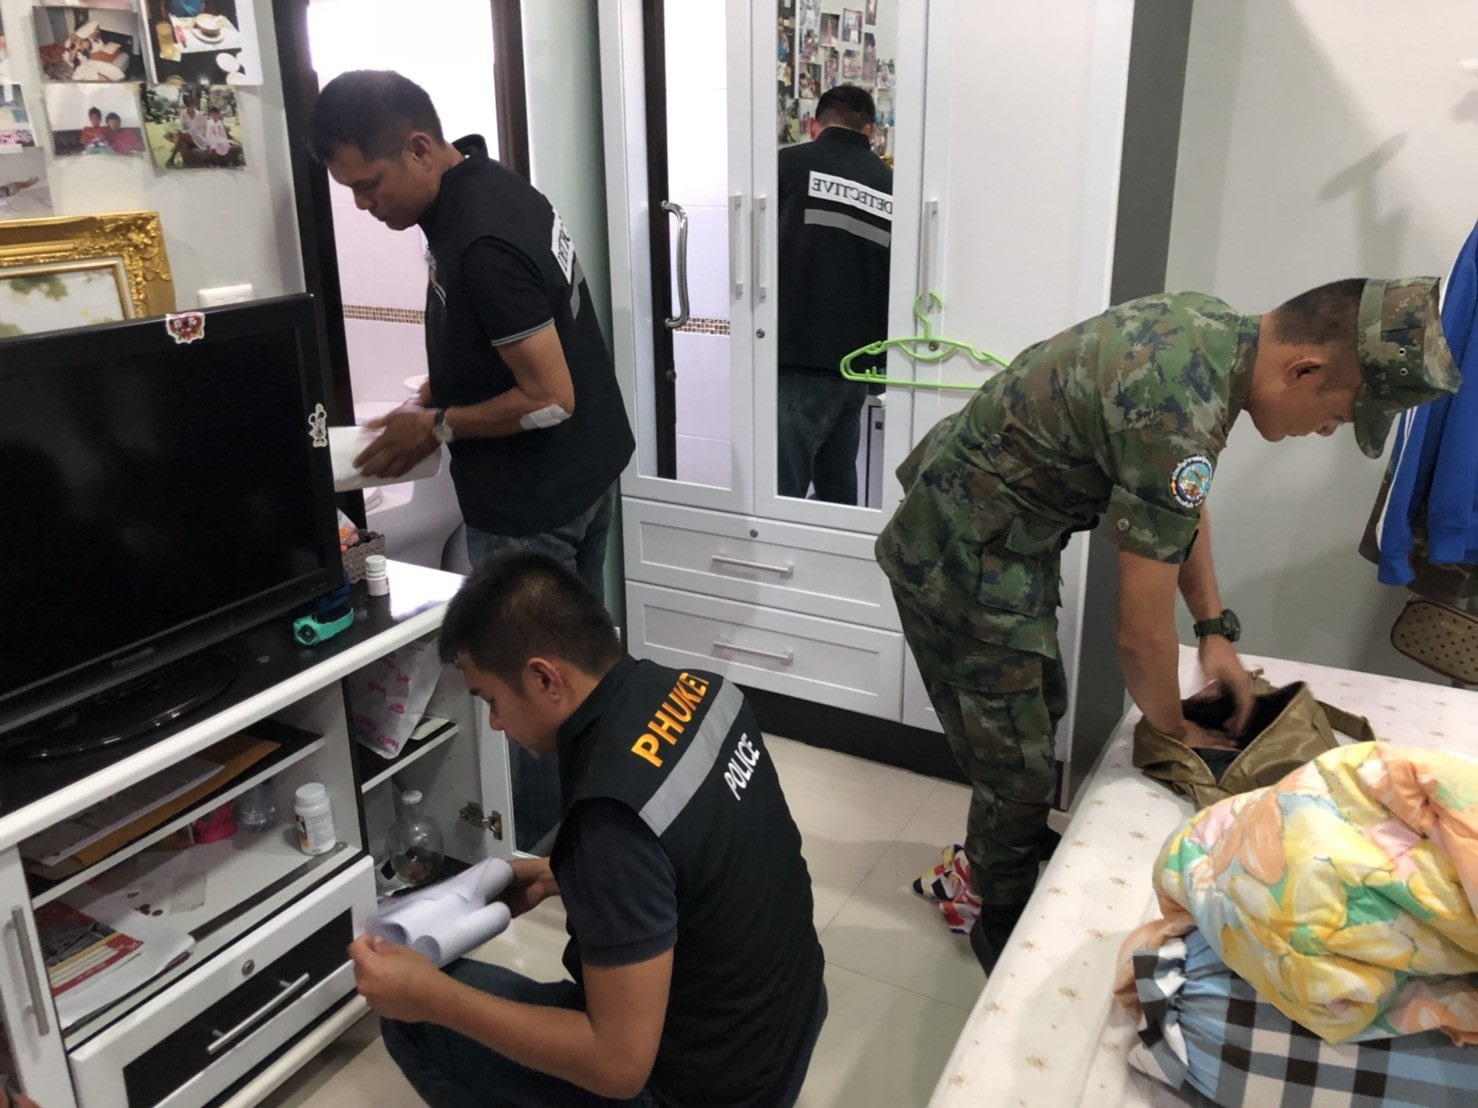 Phuket: Two arrested in Rawai over illegal football gambling | The Thaiger